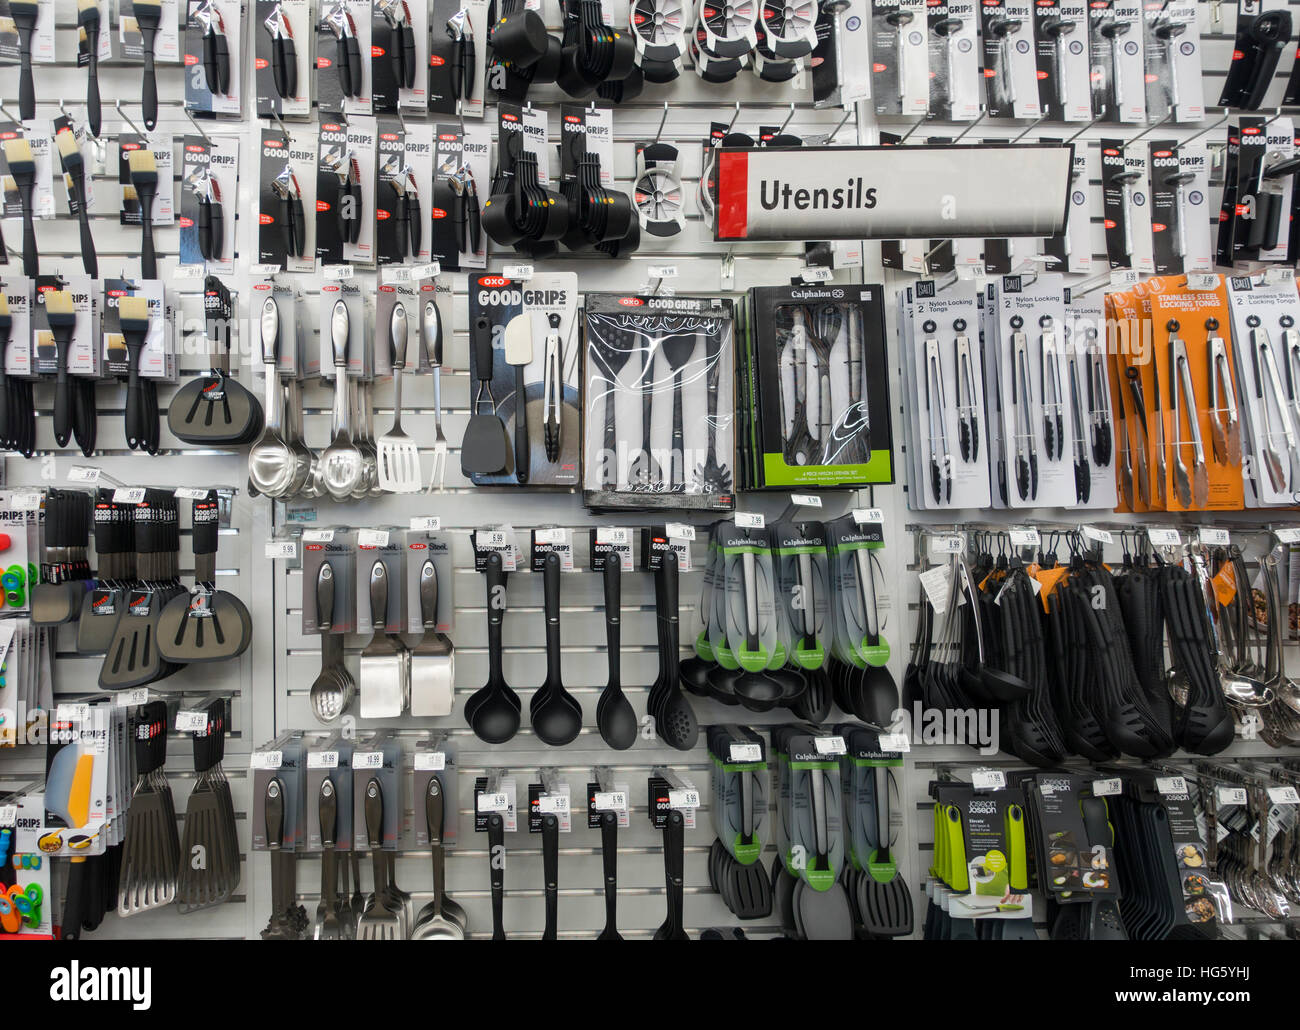 Exceptional OXO Kitchen Utensils Target Store   Stock Image